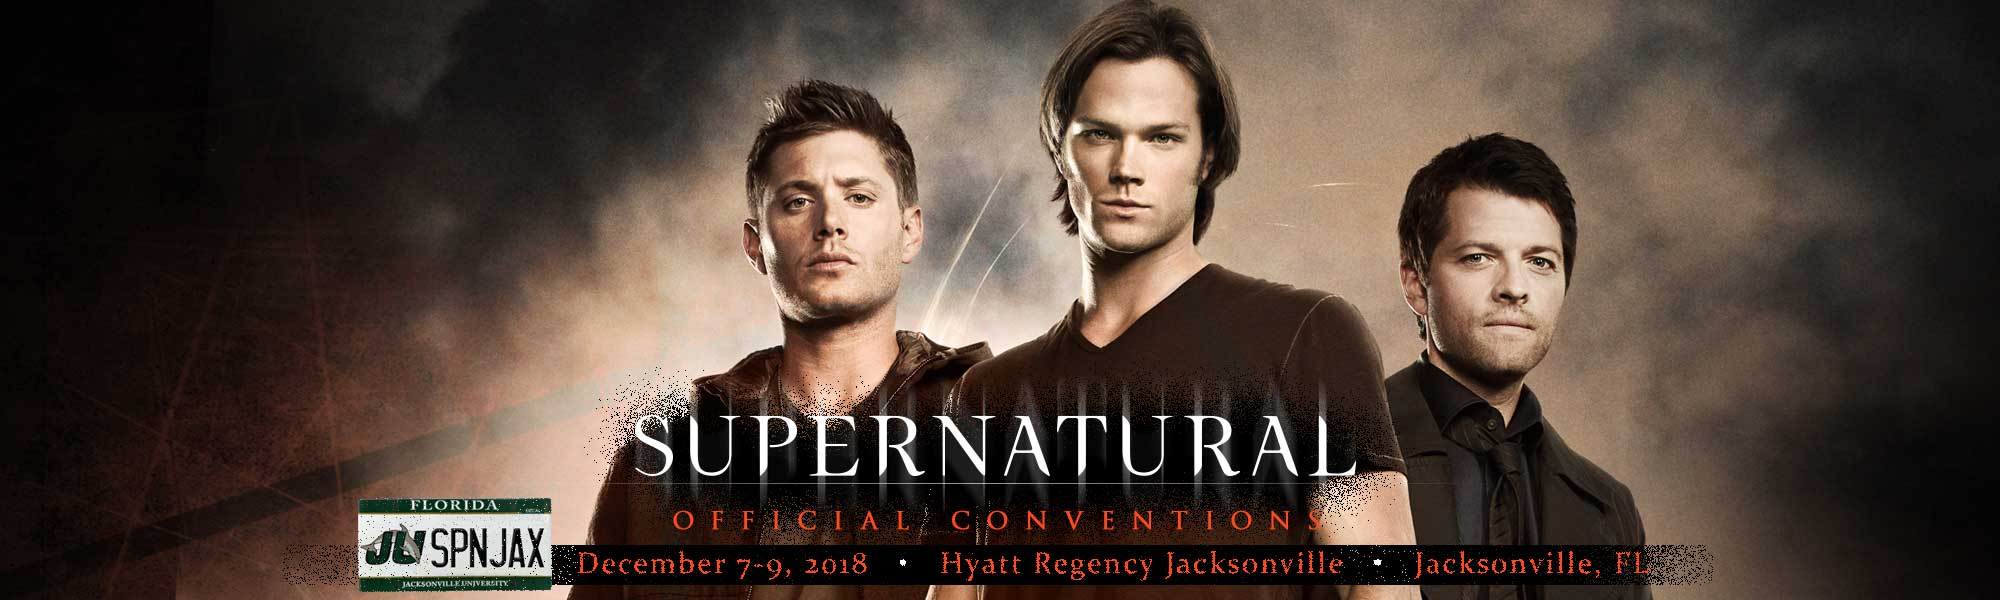 Creation Entertainment S Supernatural Offical Convention